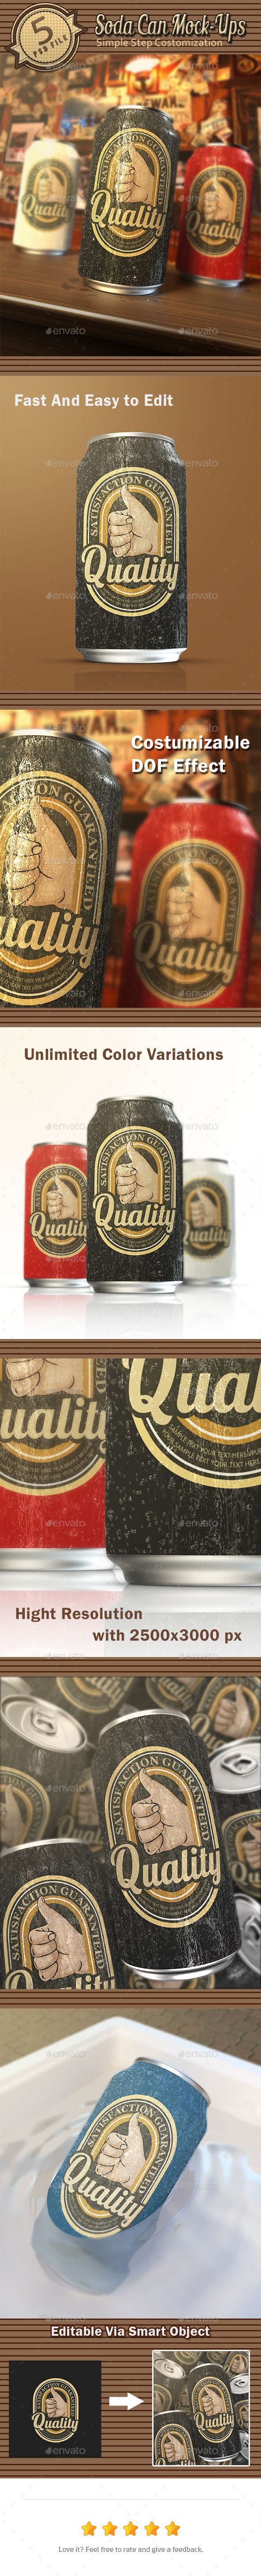 Soda Can Mock-Ups